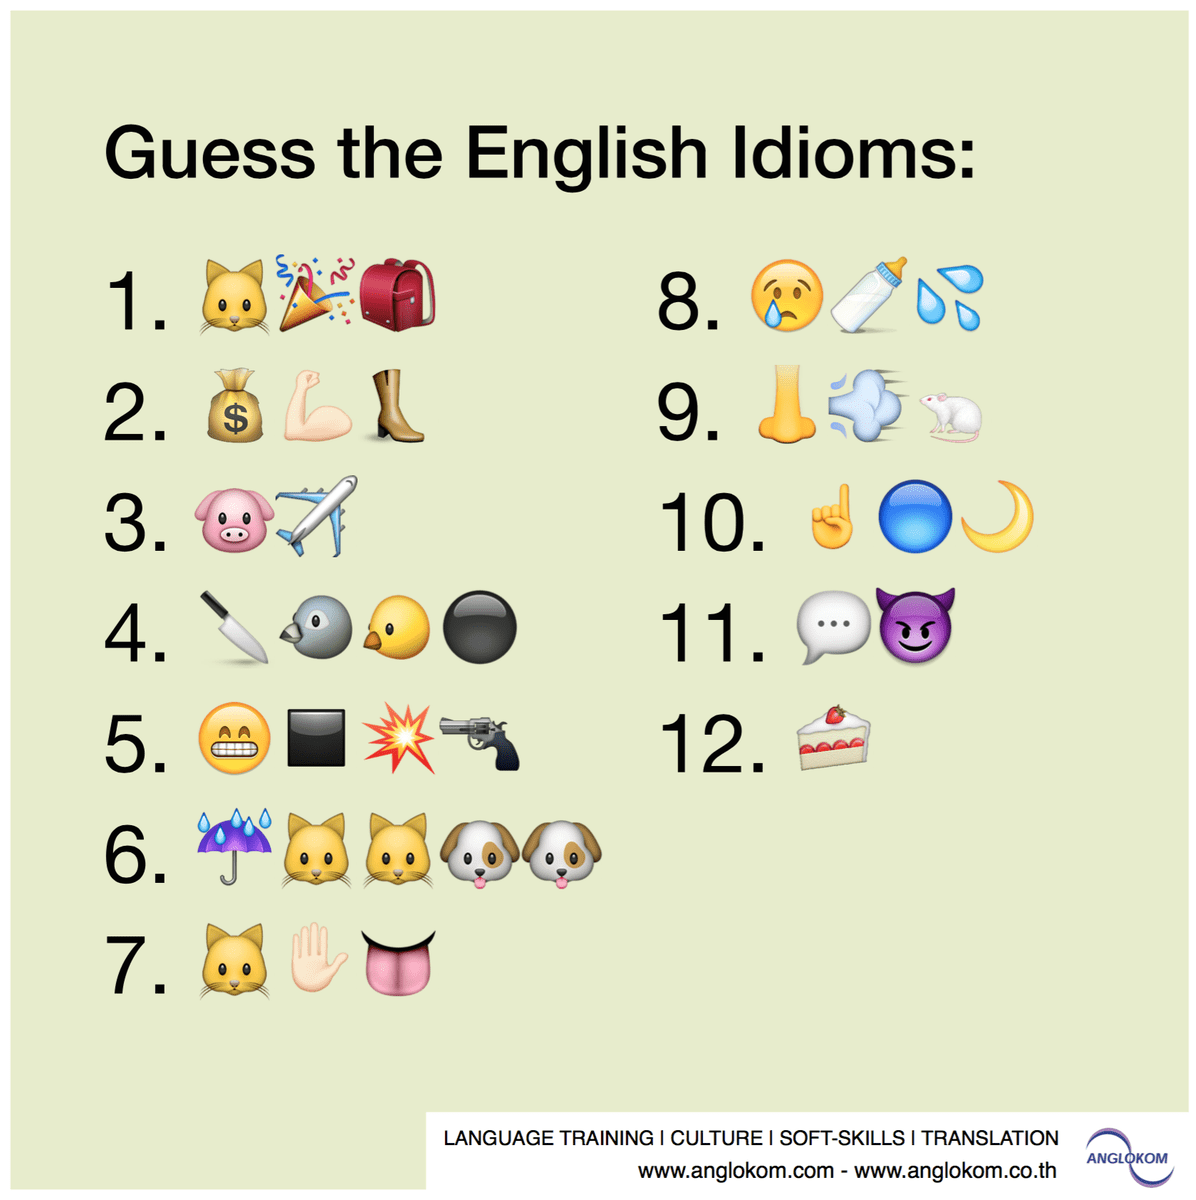 Anglokom On Twitter Guess The English Idioms Shown With